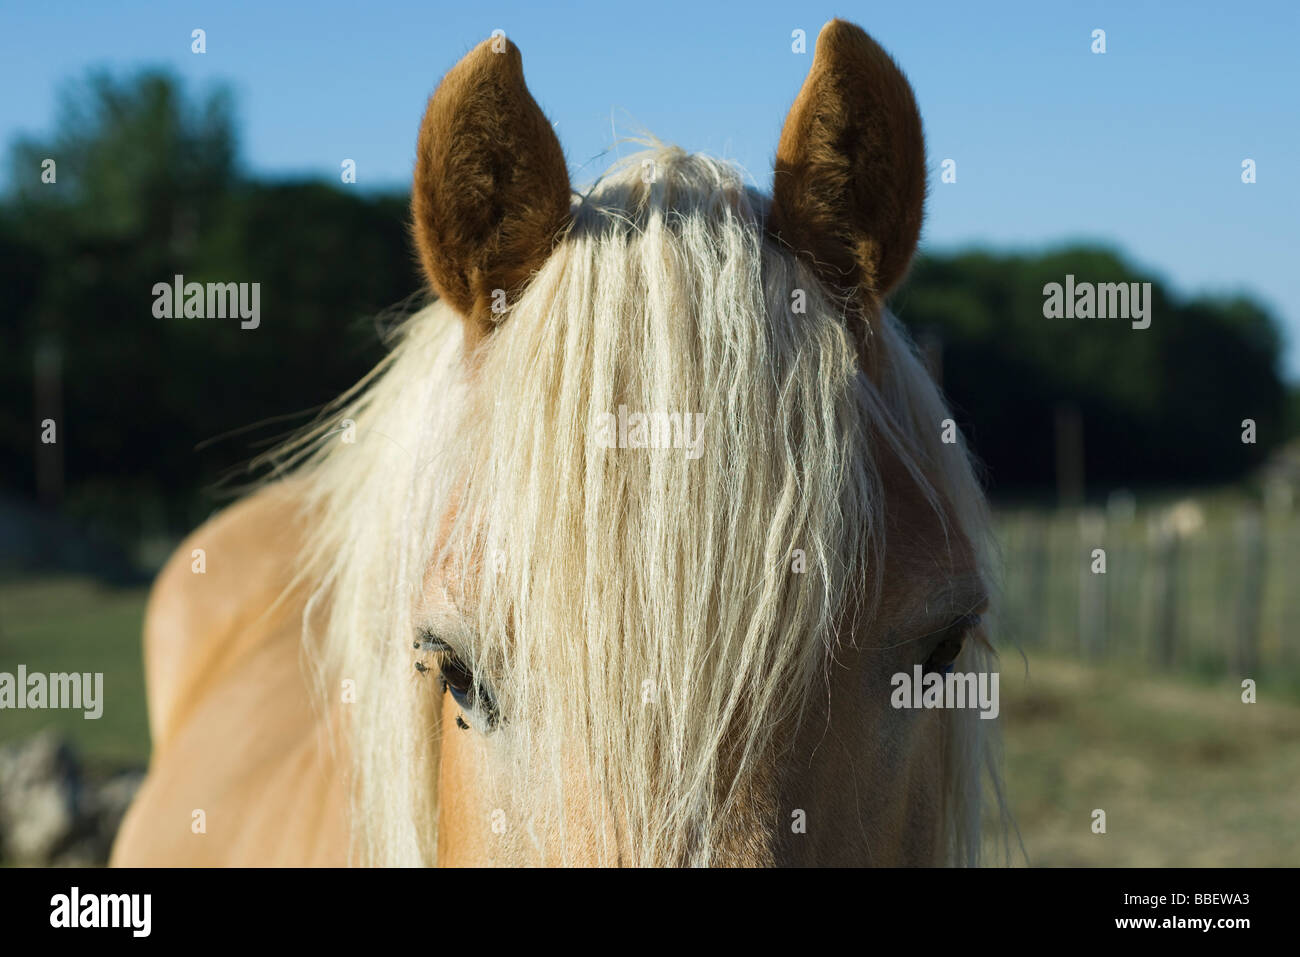 Horse with white mane, close-up - Stock Image